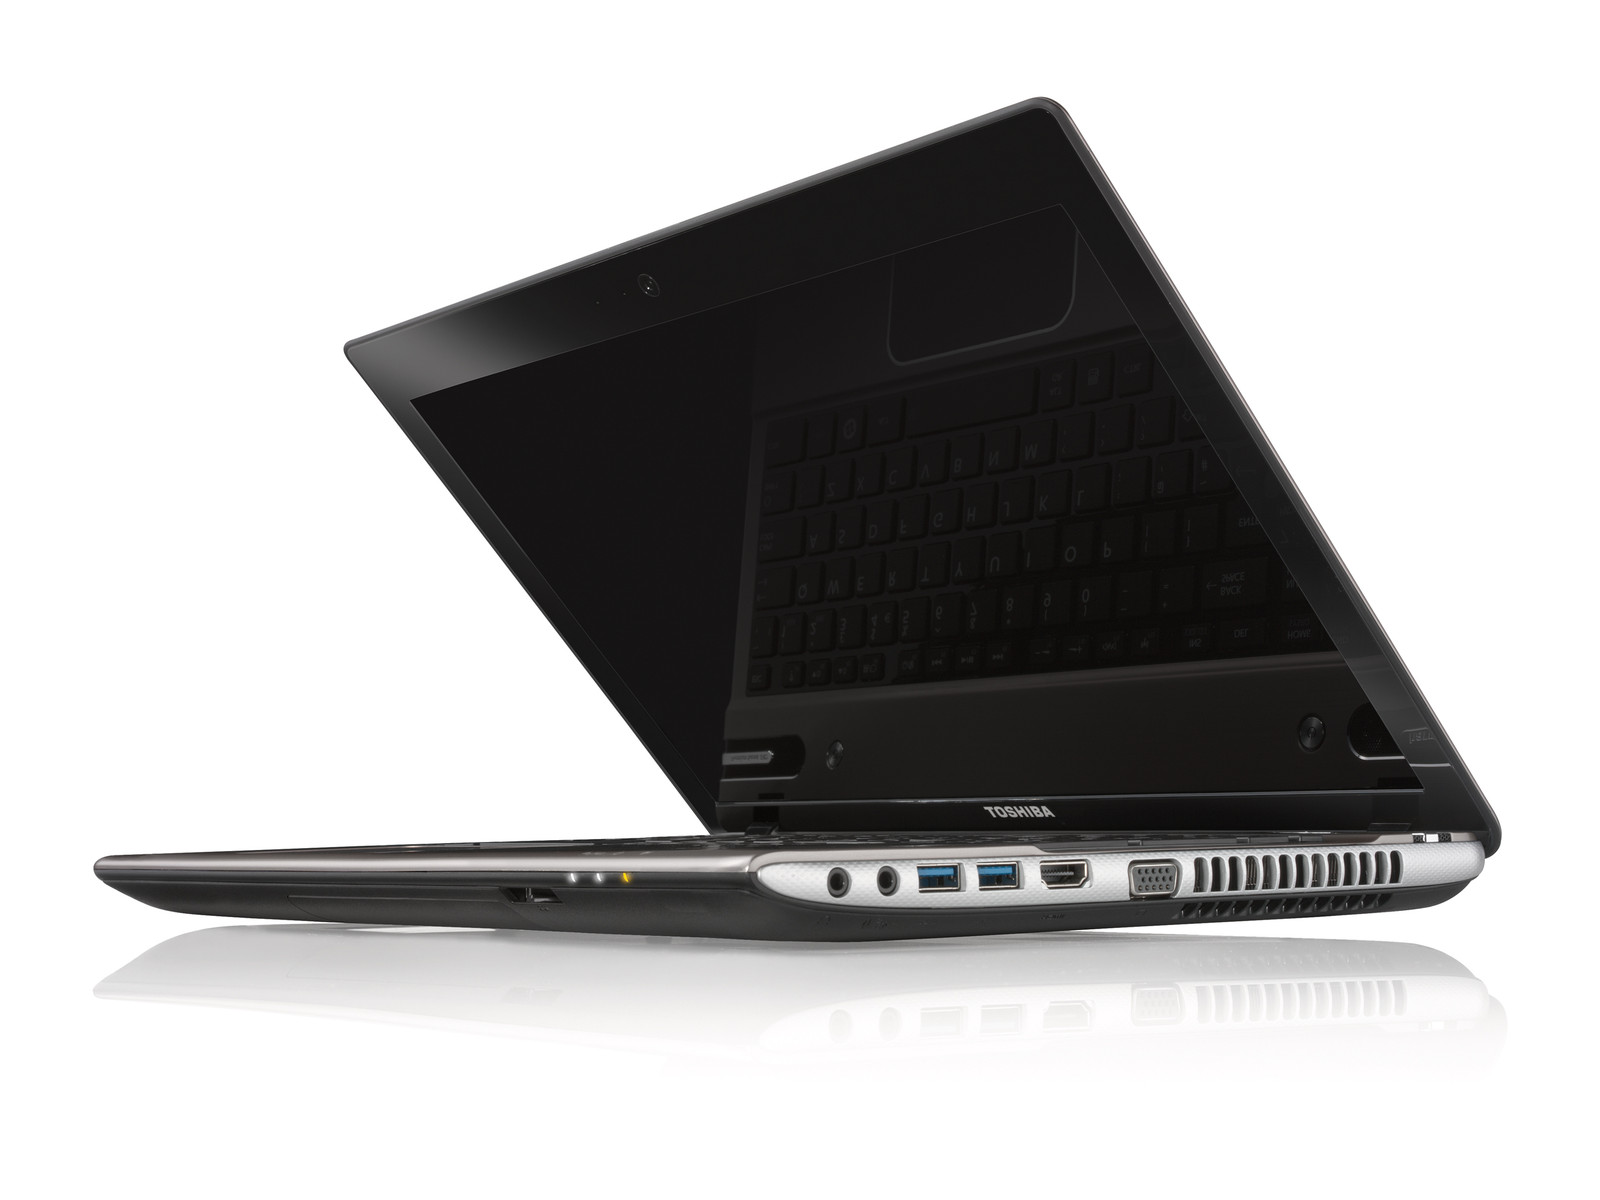 TOSHIBA SATELLITE P855 NVIDIA AUDIO WINDOWS 8.1 DRIVER